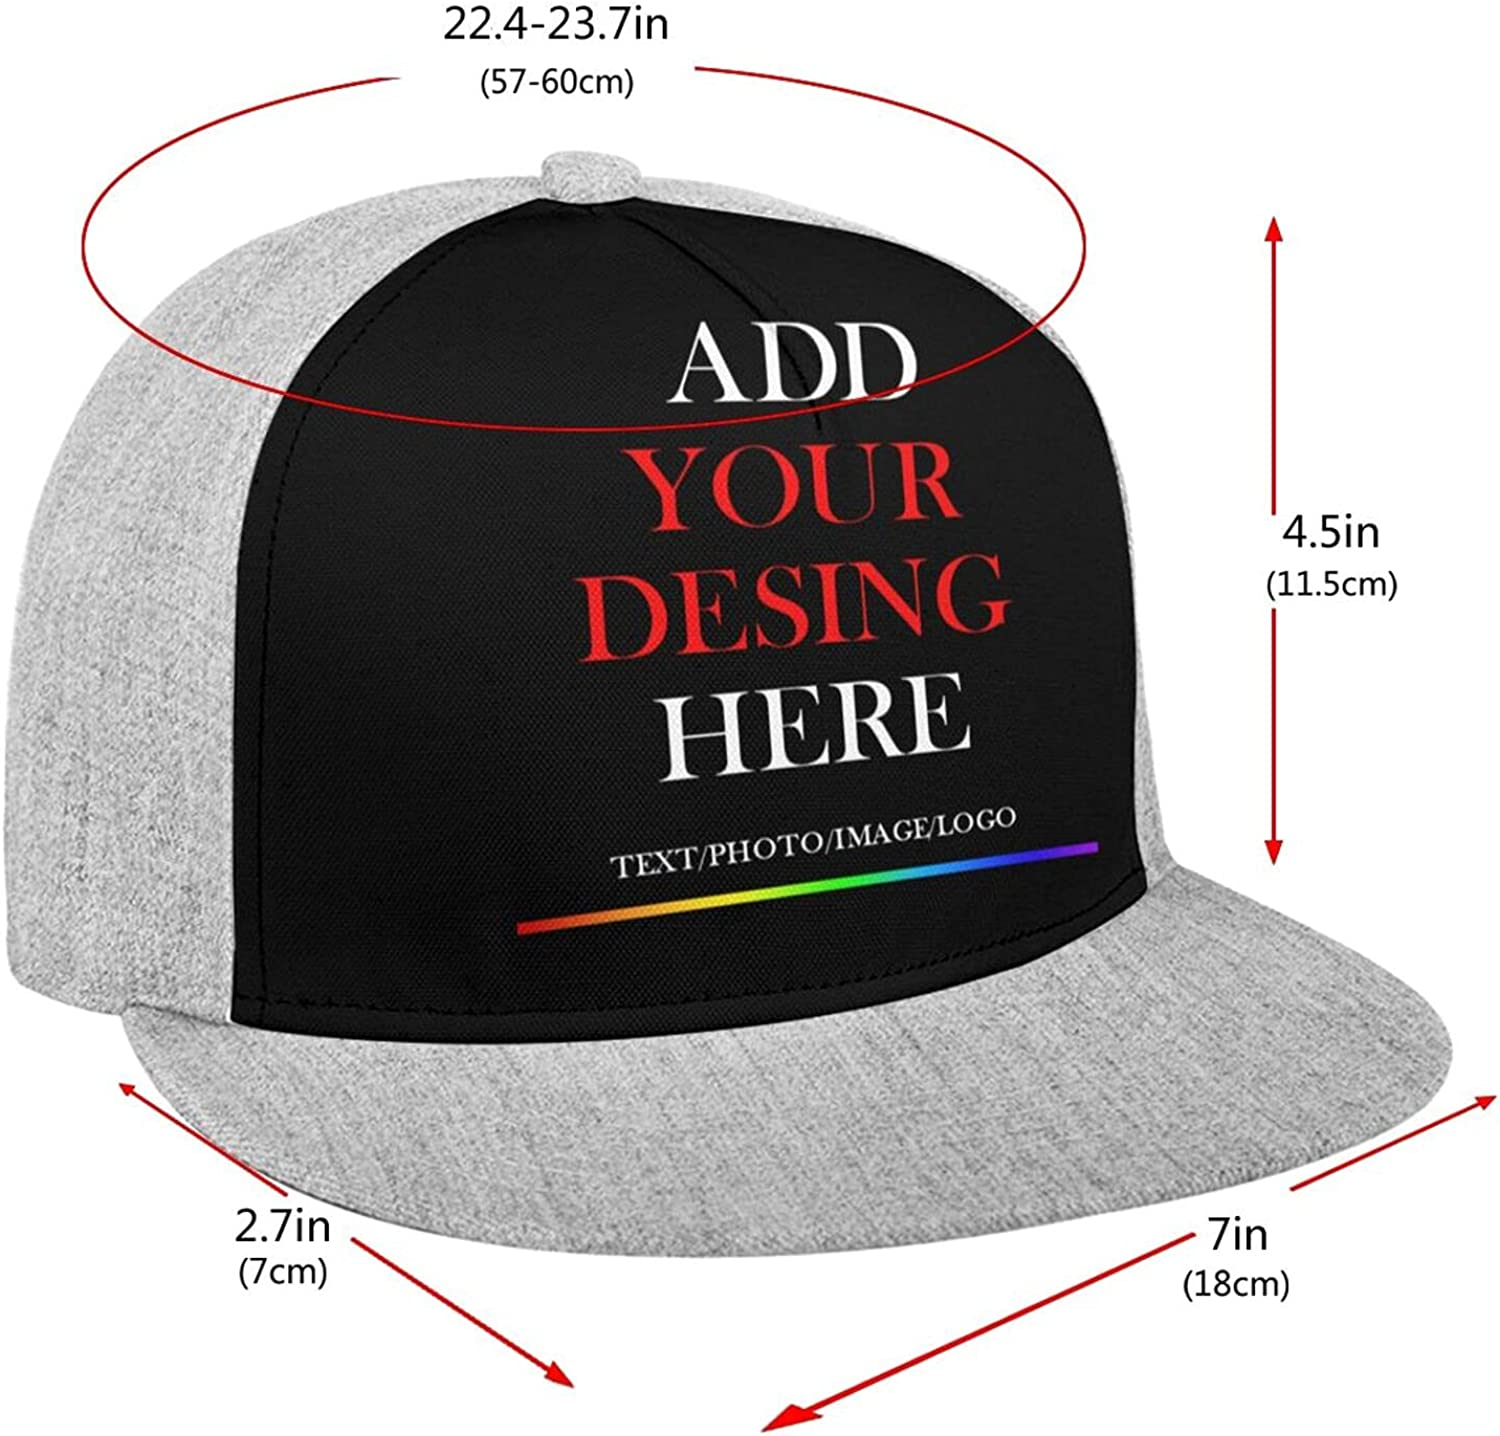 Customize Personalized Baseball Cap Custom Sport Hat with Photo Text Design Men's and Women's Adjustable Outdoor Hats